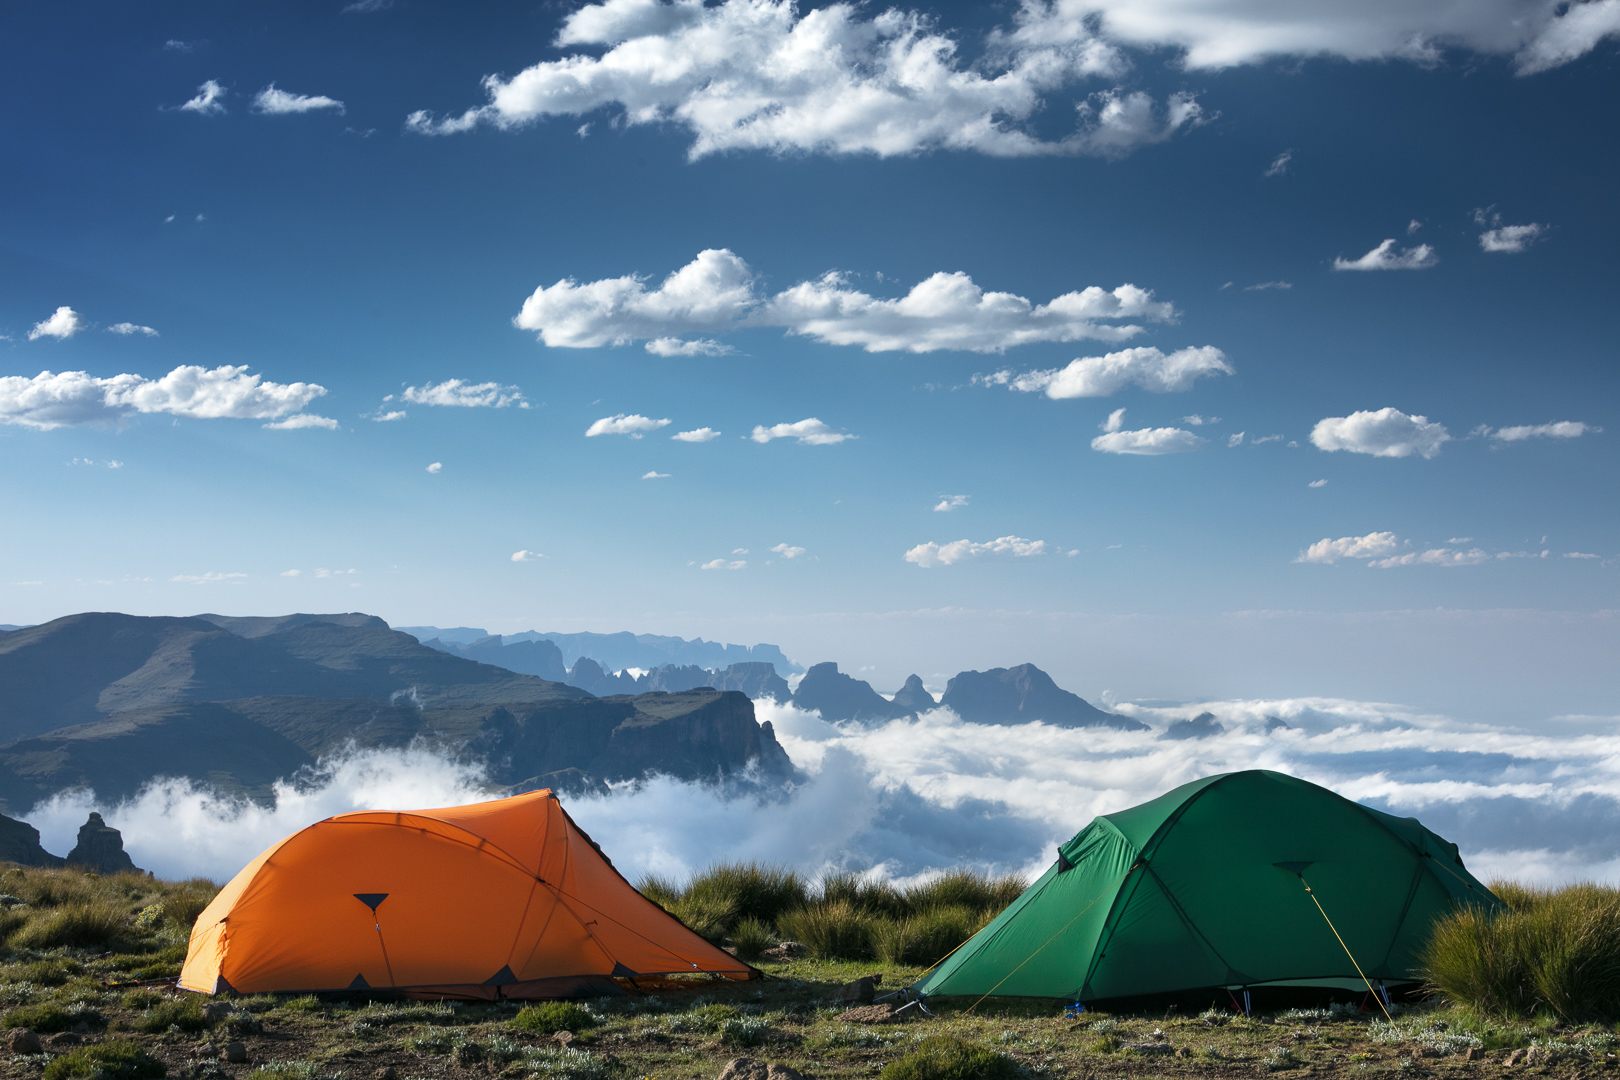 Although we had planned to walk further that day, when we stumbled across this view we soon decided to make camp.